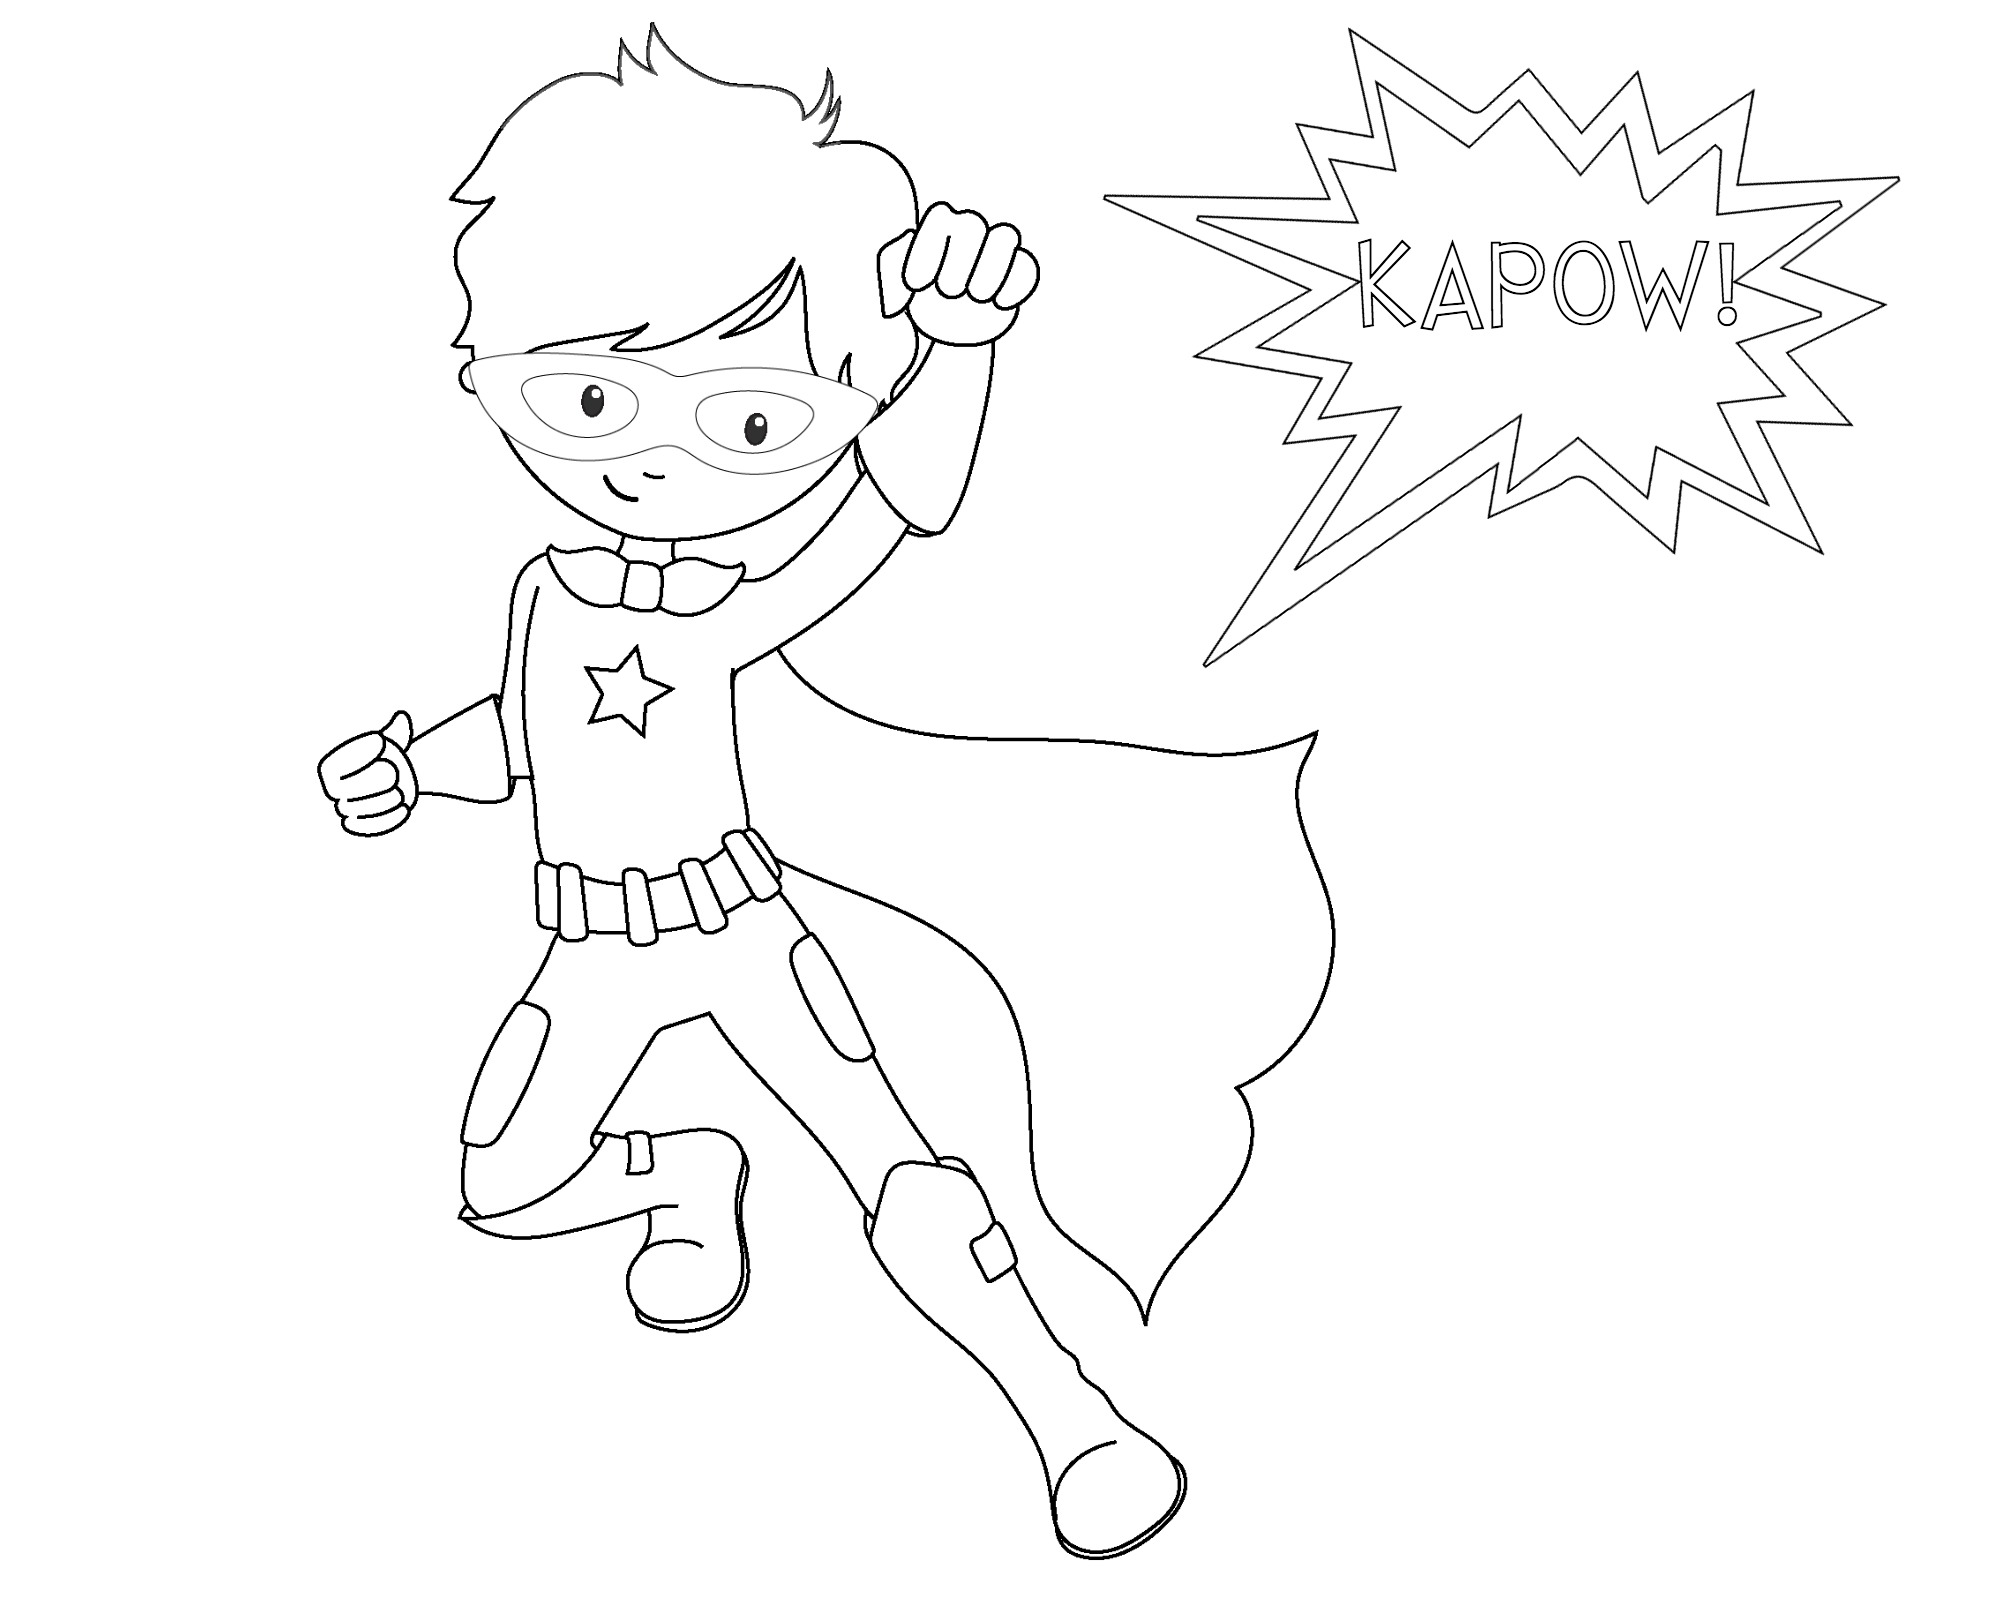 superhero printable coloring pages Free Printable Superhero Coloring Sheets for Kids   Crazy Little  superhero printable coloring pages